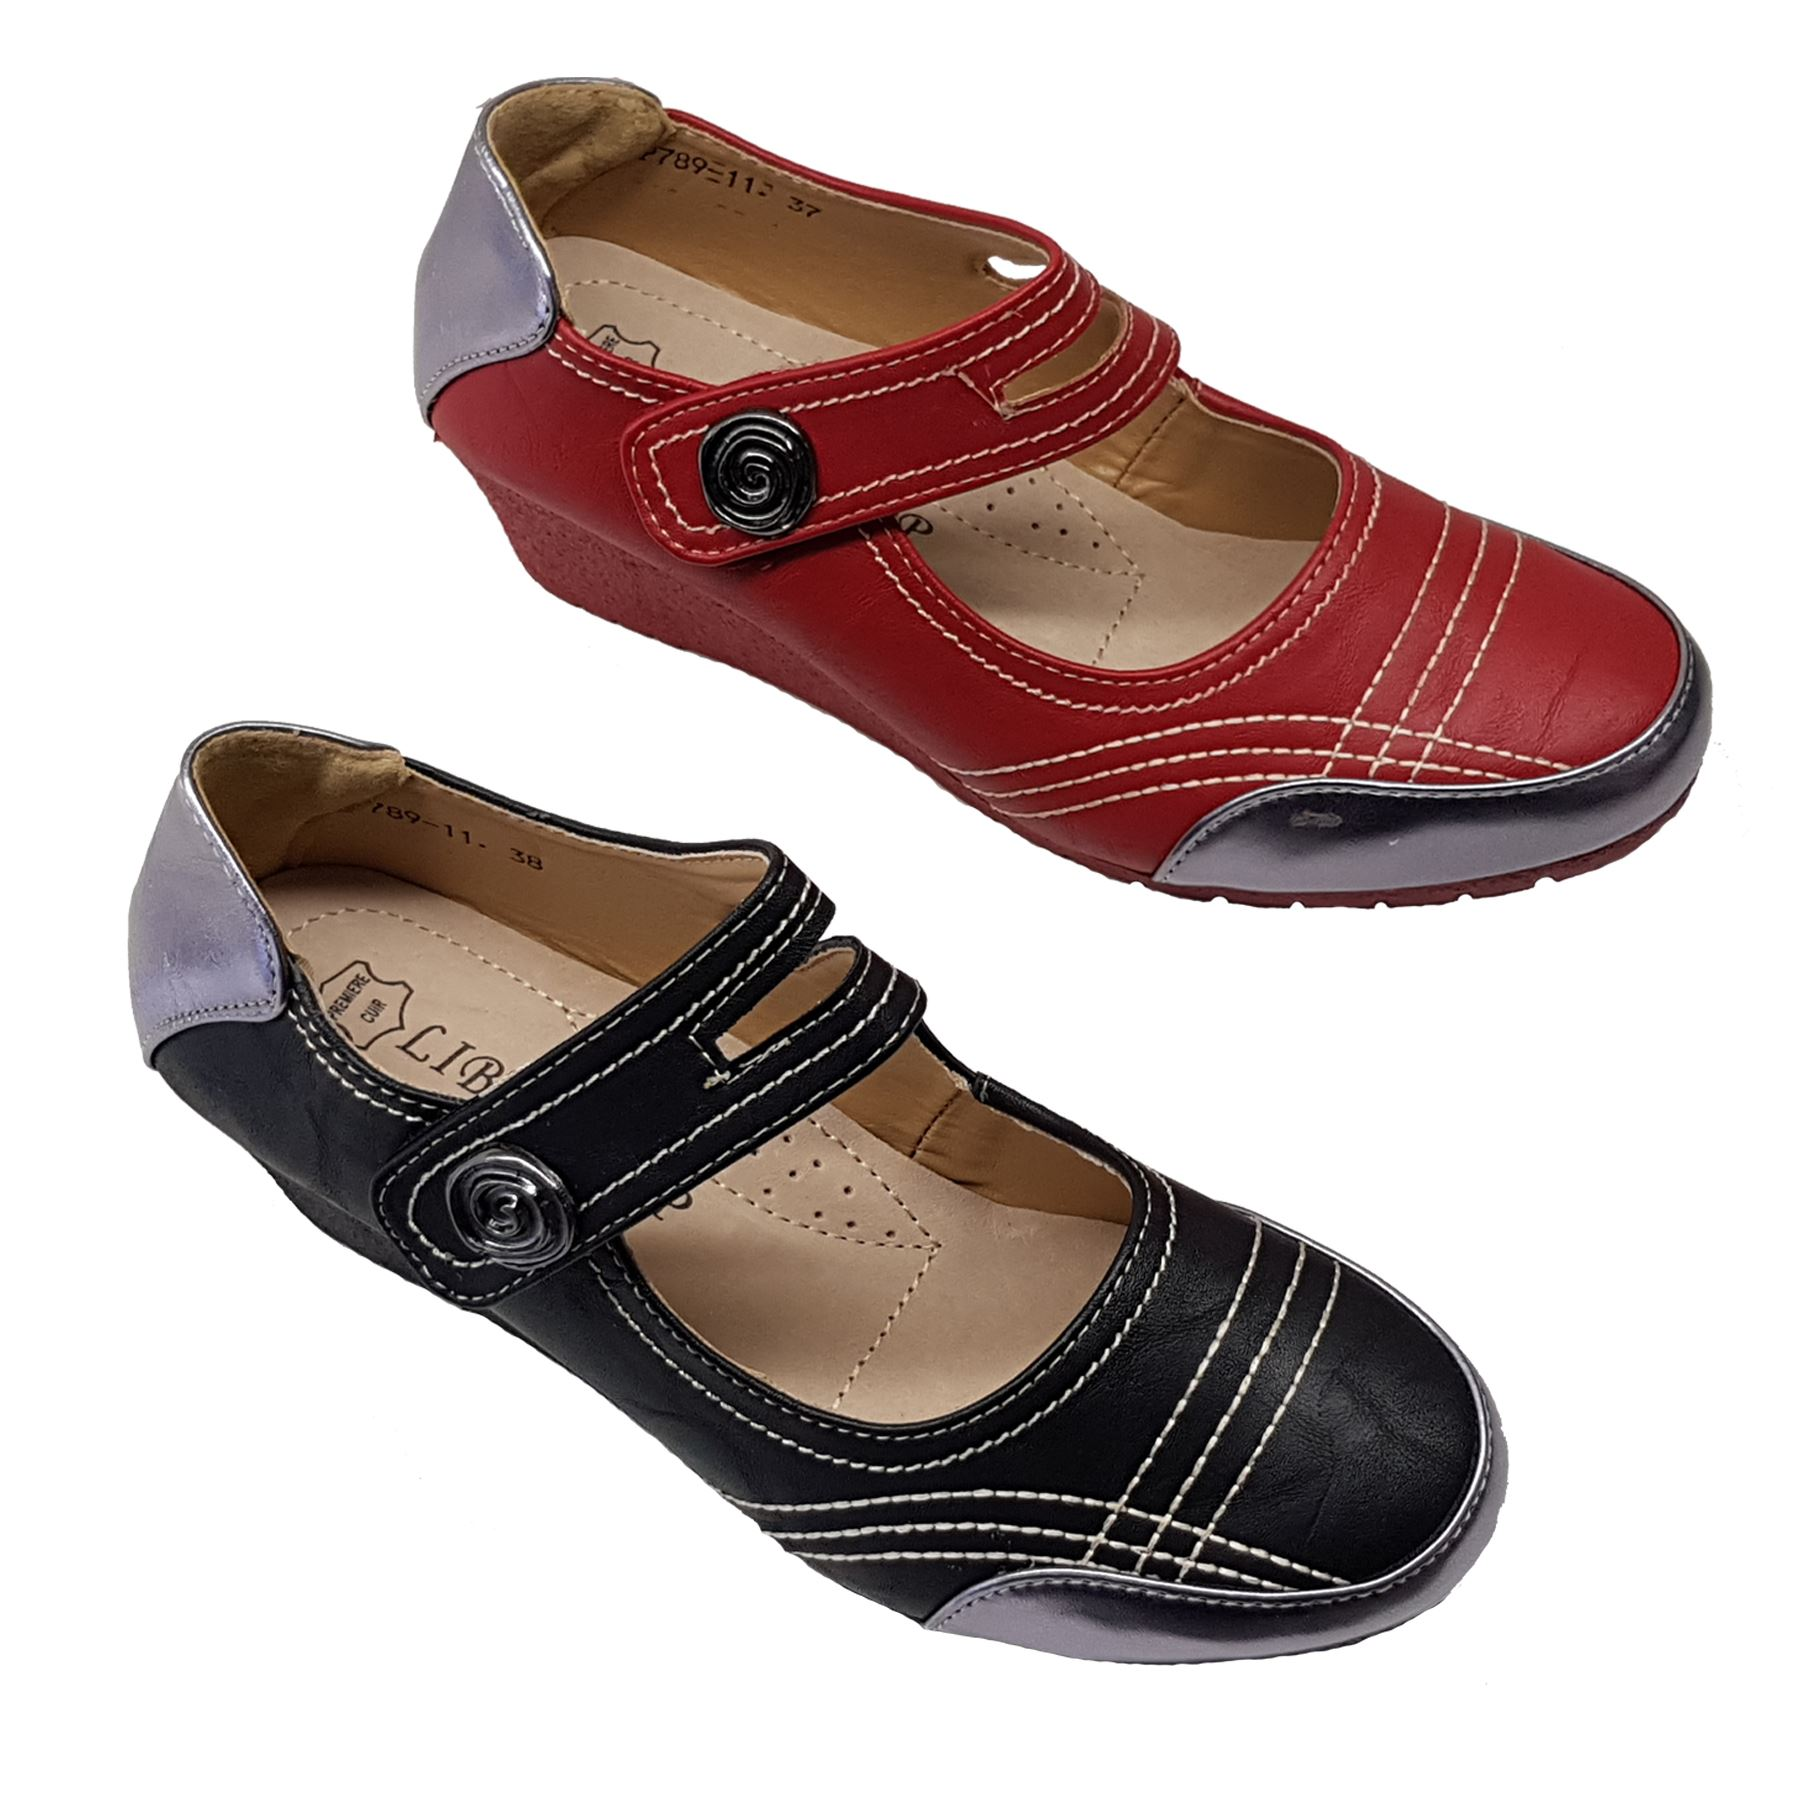 Ladies Padded Insole Stitch Comfy Strap Low Wedge Heel Faux Leather Tendencies Sandals Footbed 2 Brown 42 Shoes